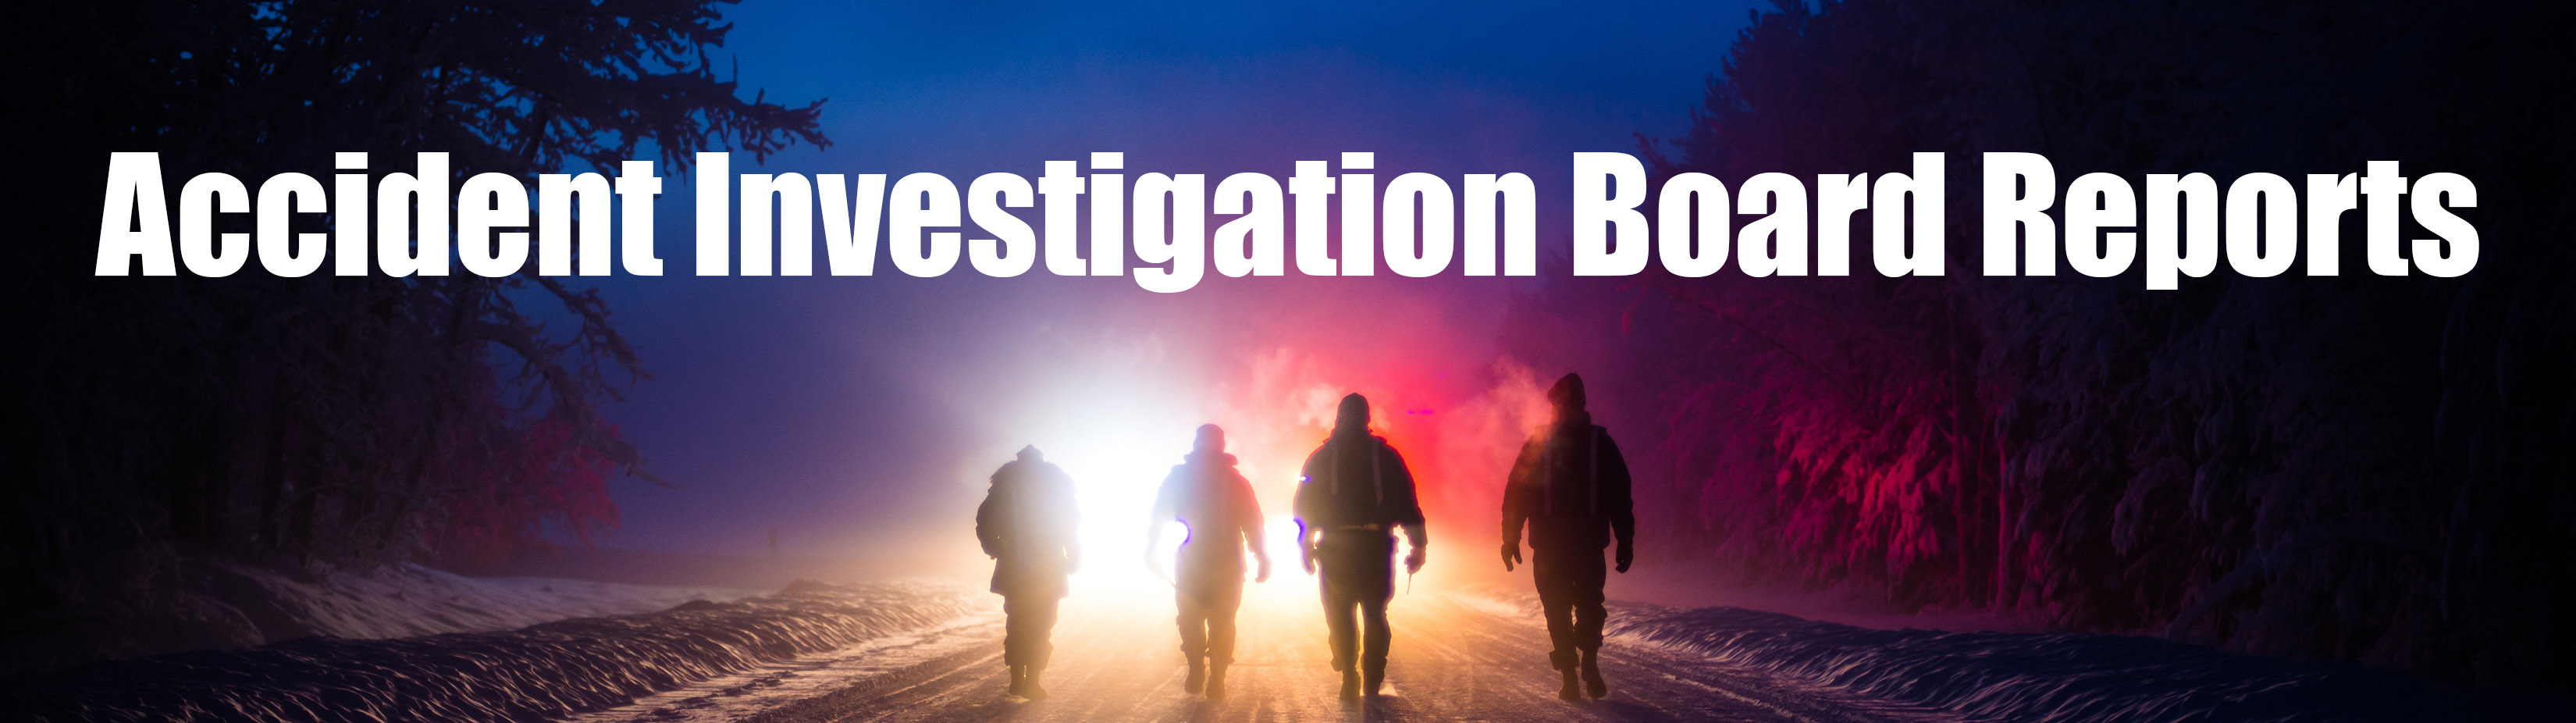 Link to Accident Investigation Board Reports